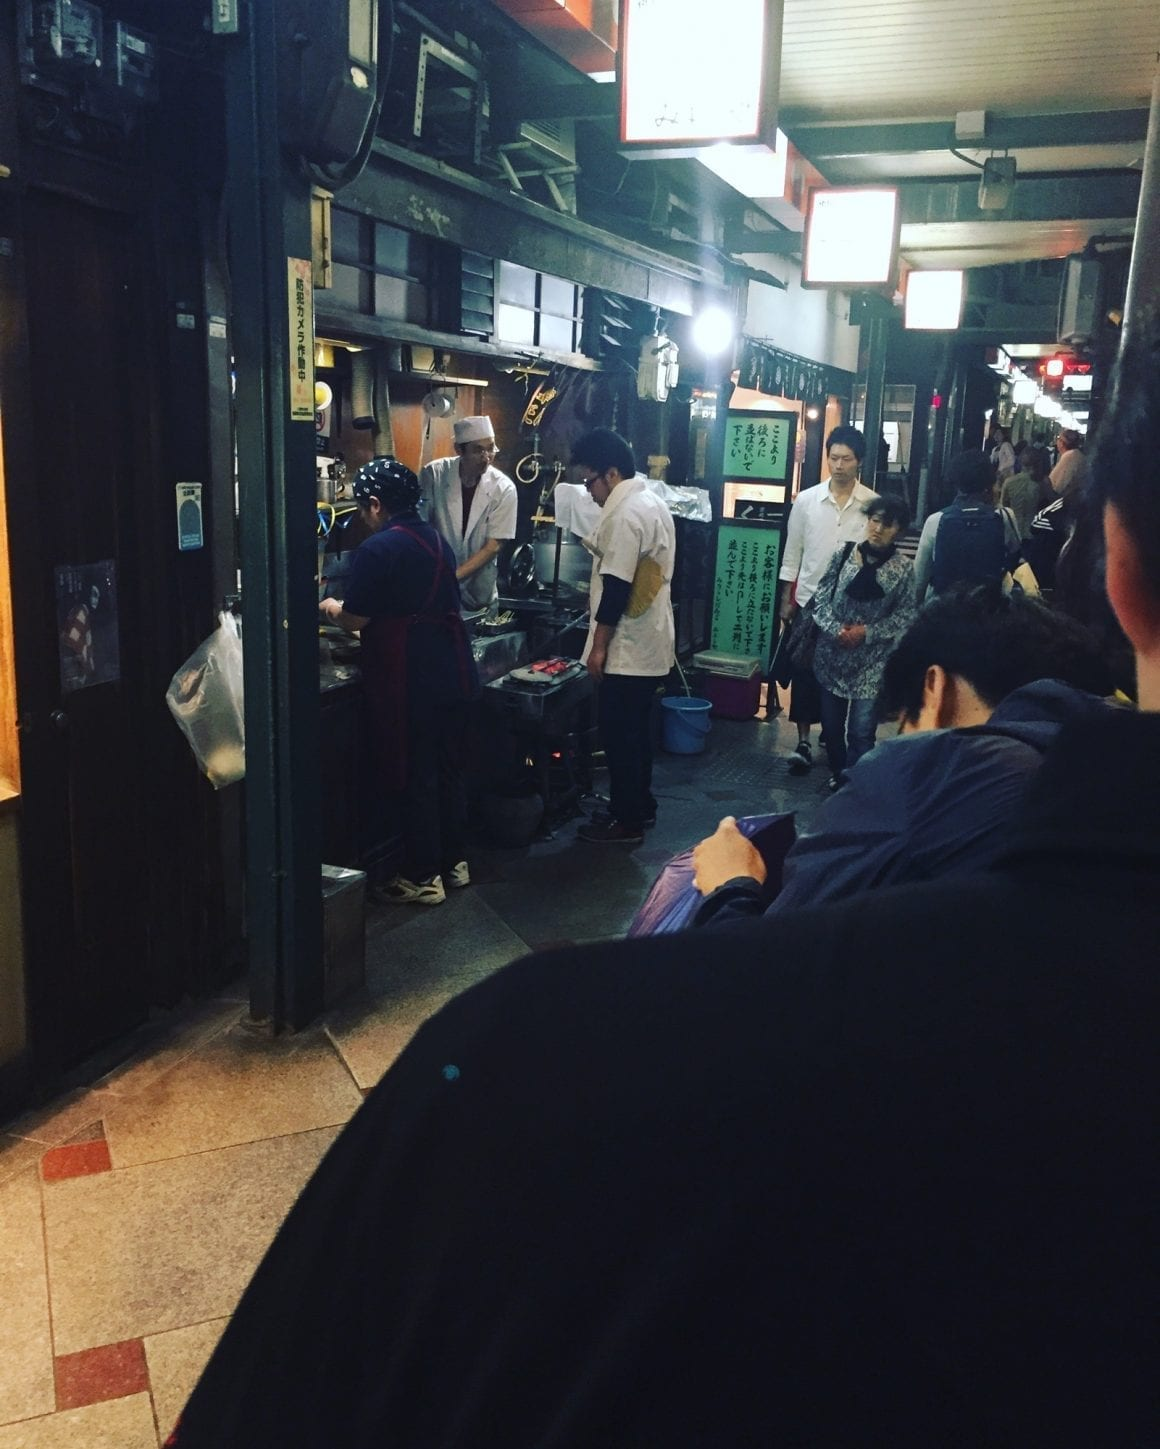 Queueing up in the middle of the streets in Kyoto